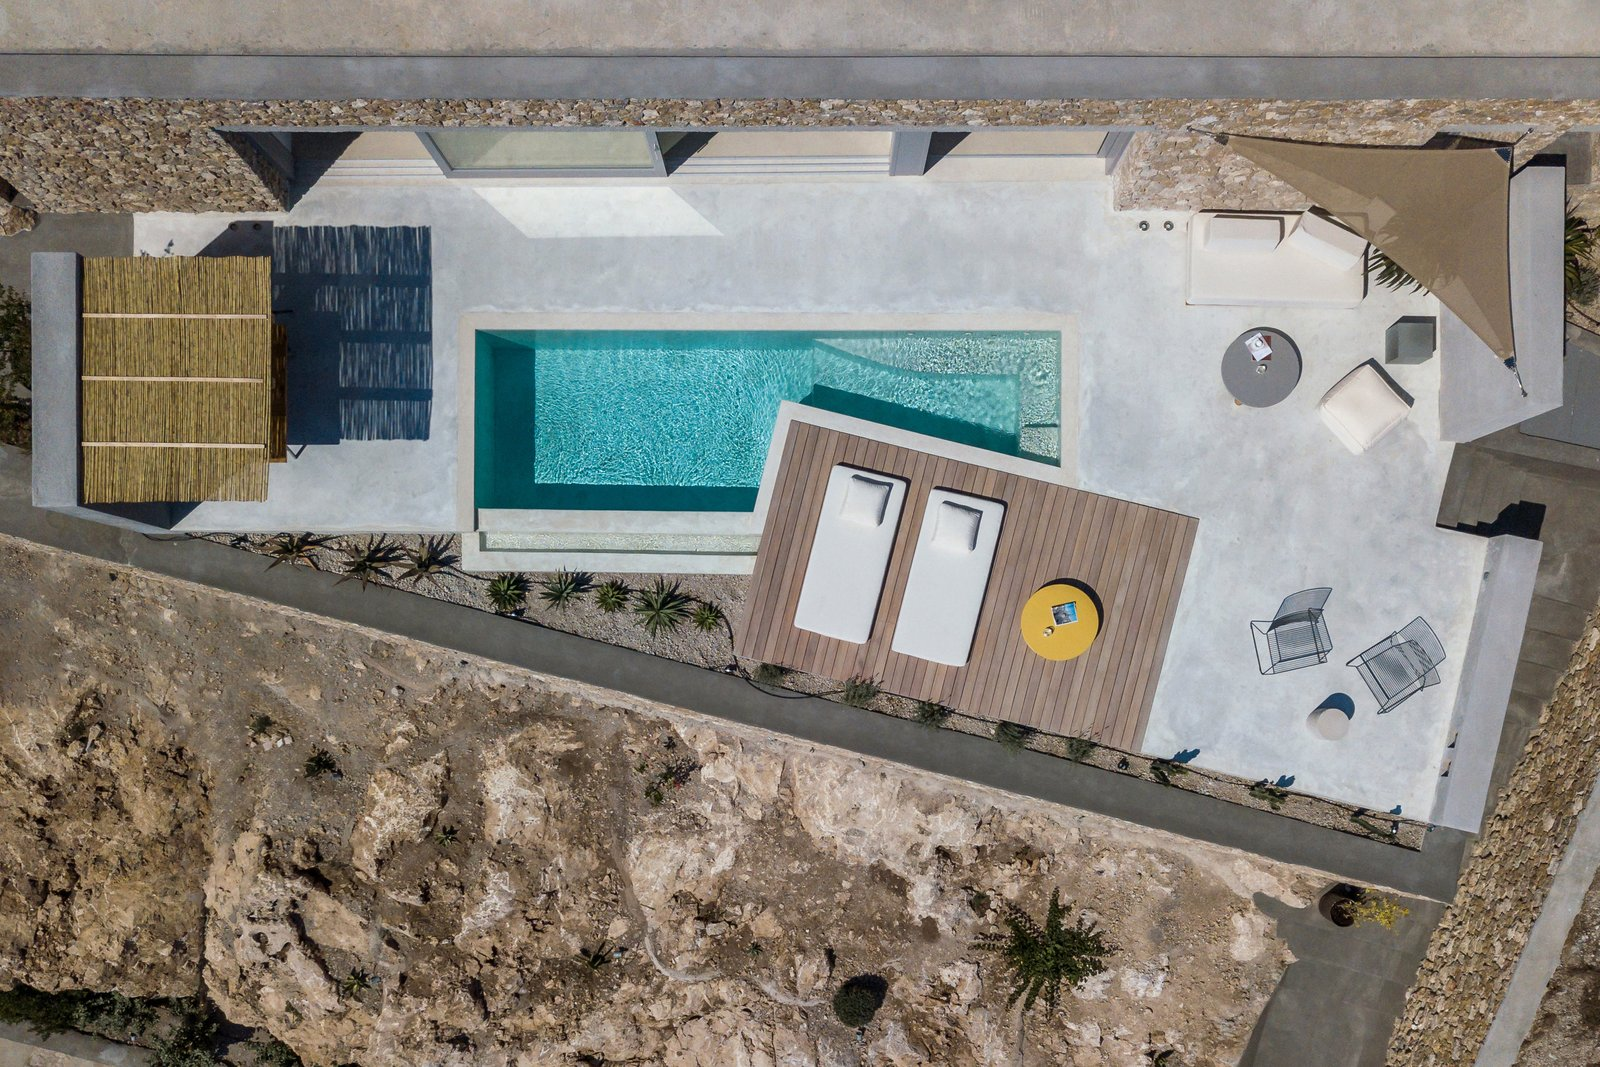 Outdoor, Small, Front Yard, Large, Wood, Concrete, Stone, Decking, Concrete, Concrete, Swimming, and Infinity The excavated material has been used to shape the property's exterior features.  Best Outdoor Small Infinity Photos from A Modern Home Is Gently Slotted Into a Steep Slope in Santorini